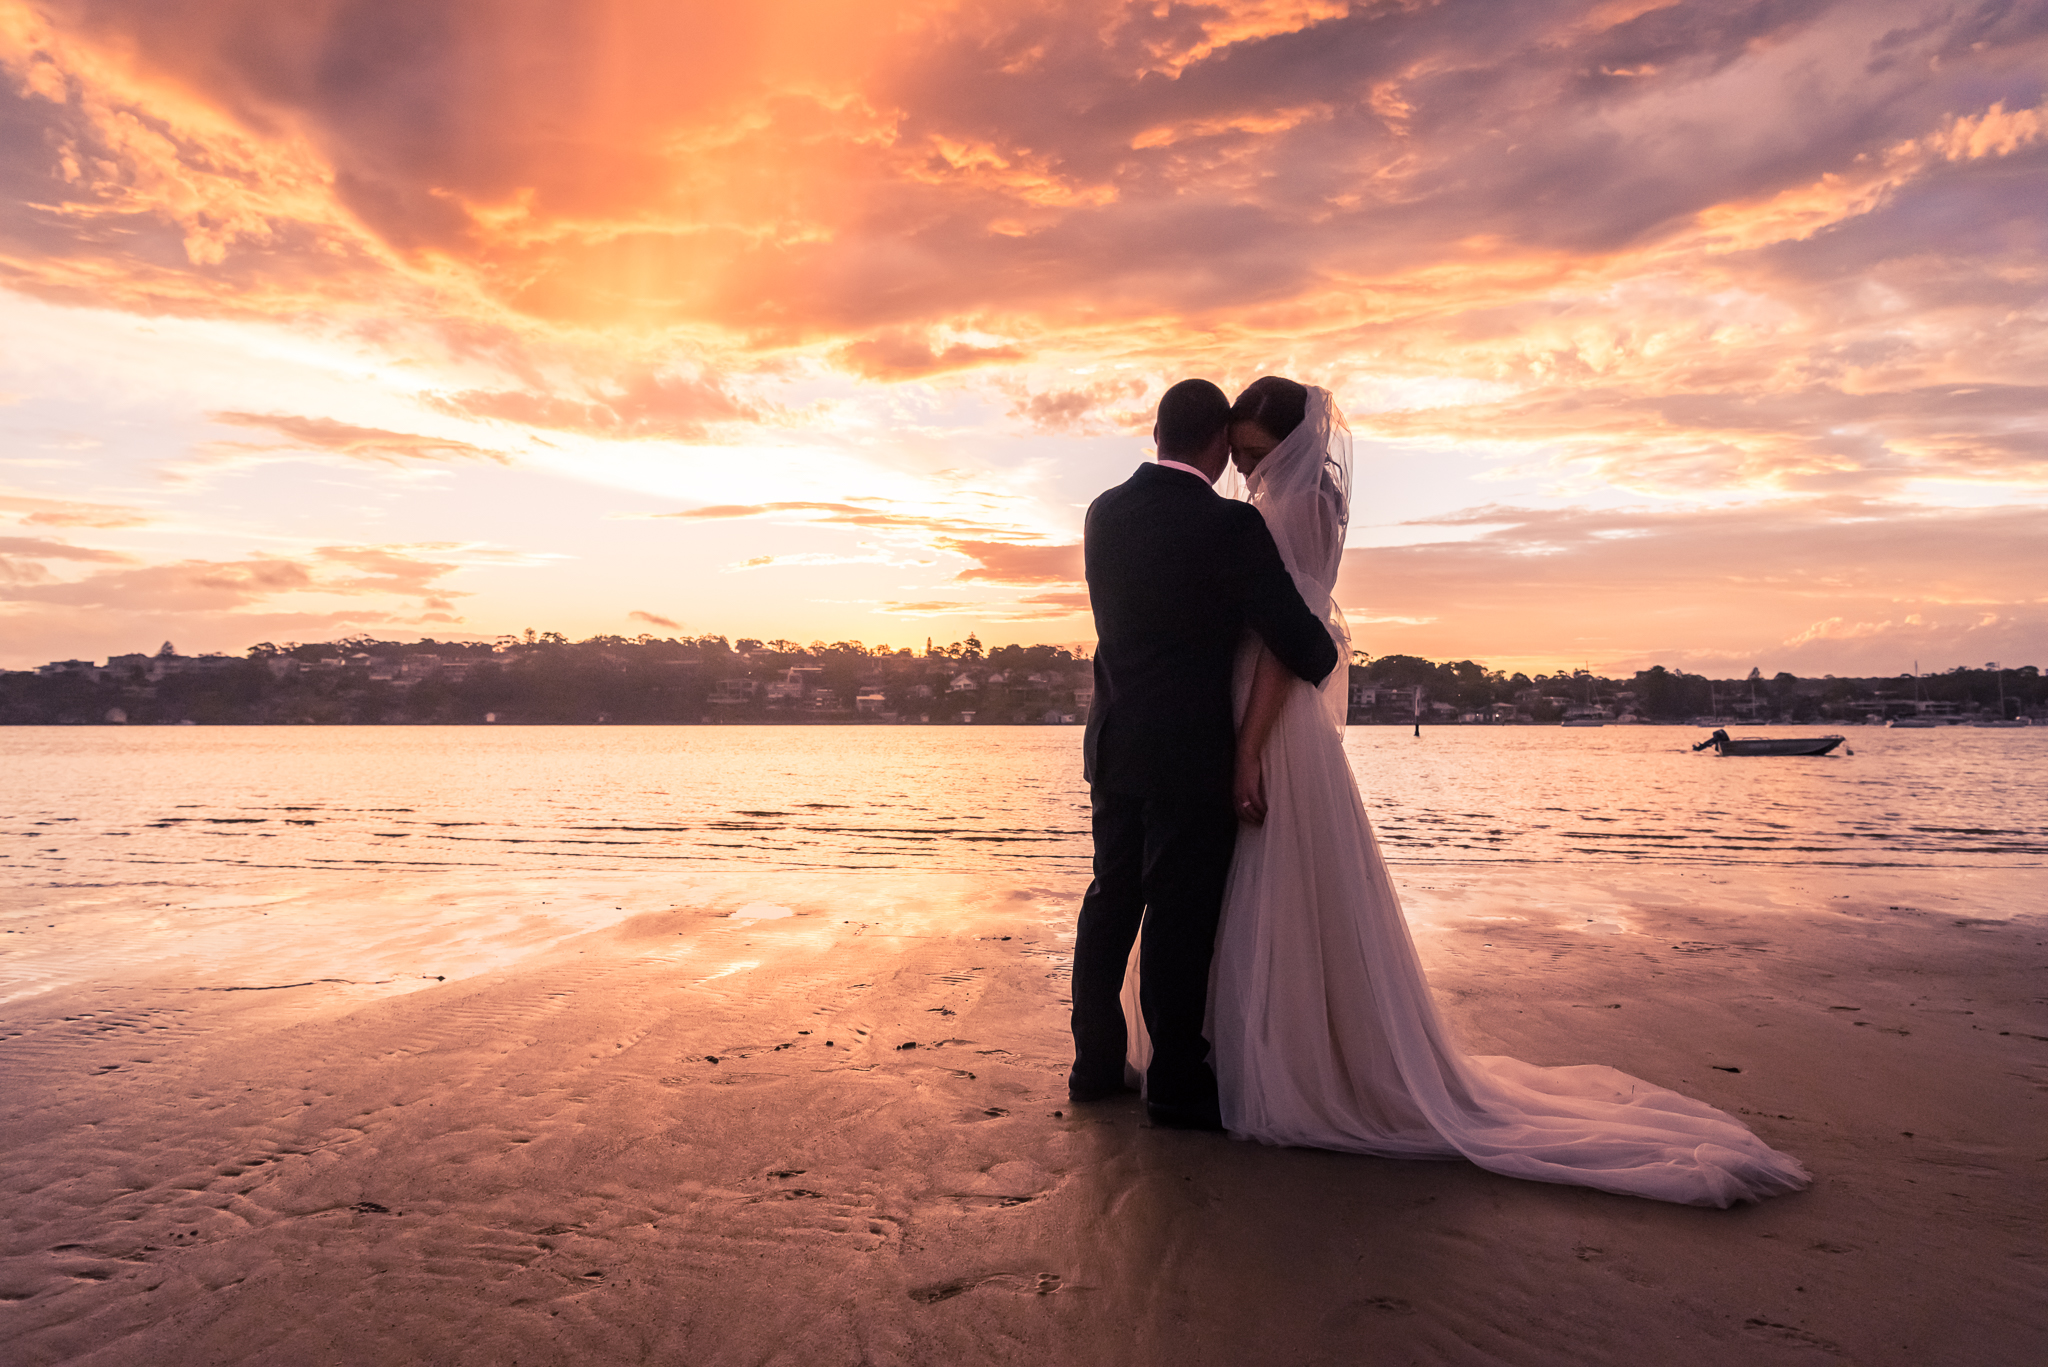 sunset on the beach with bride and groom